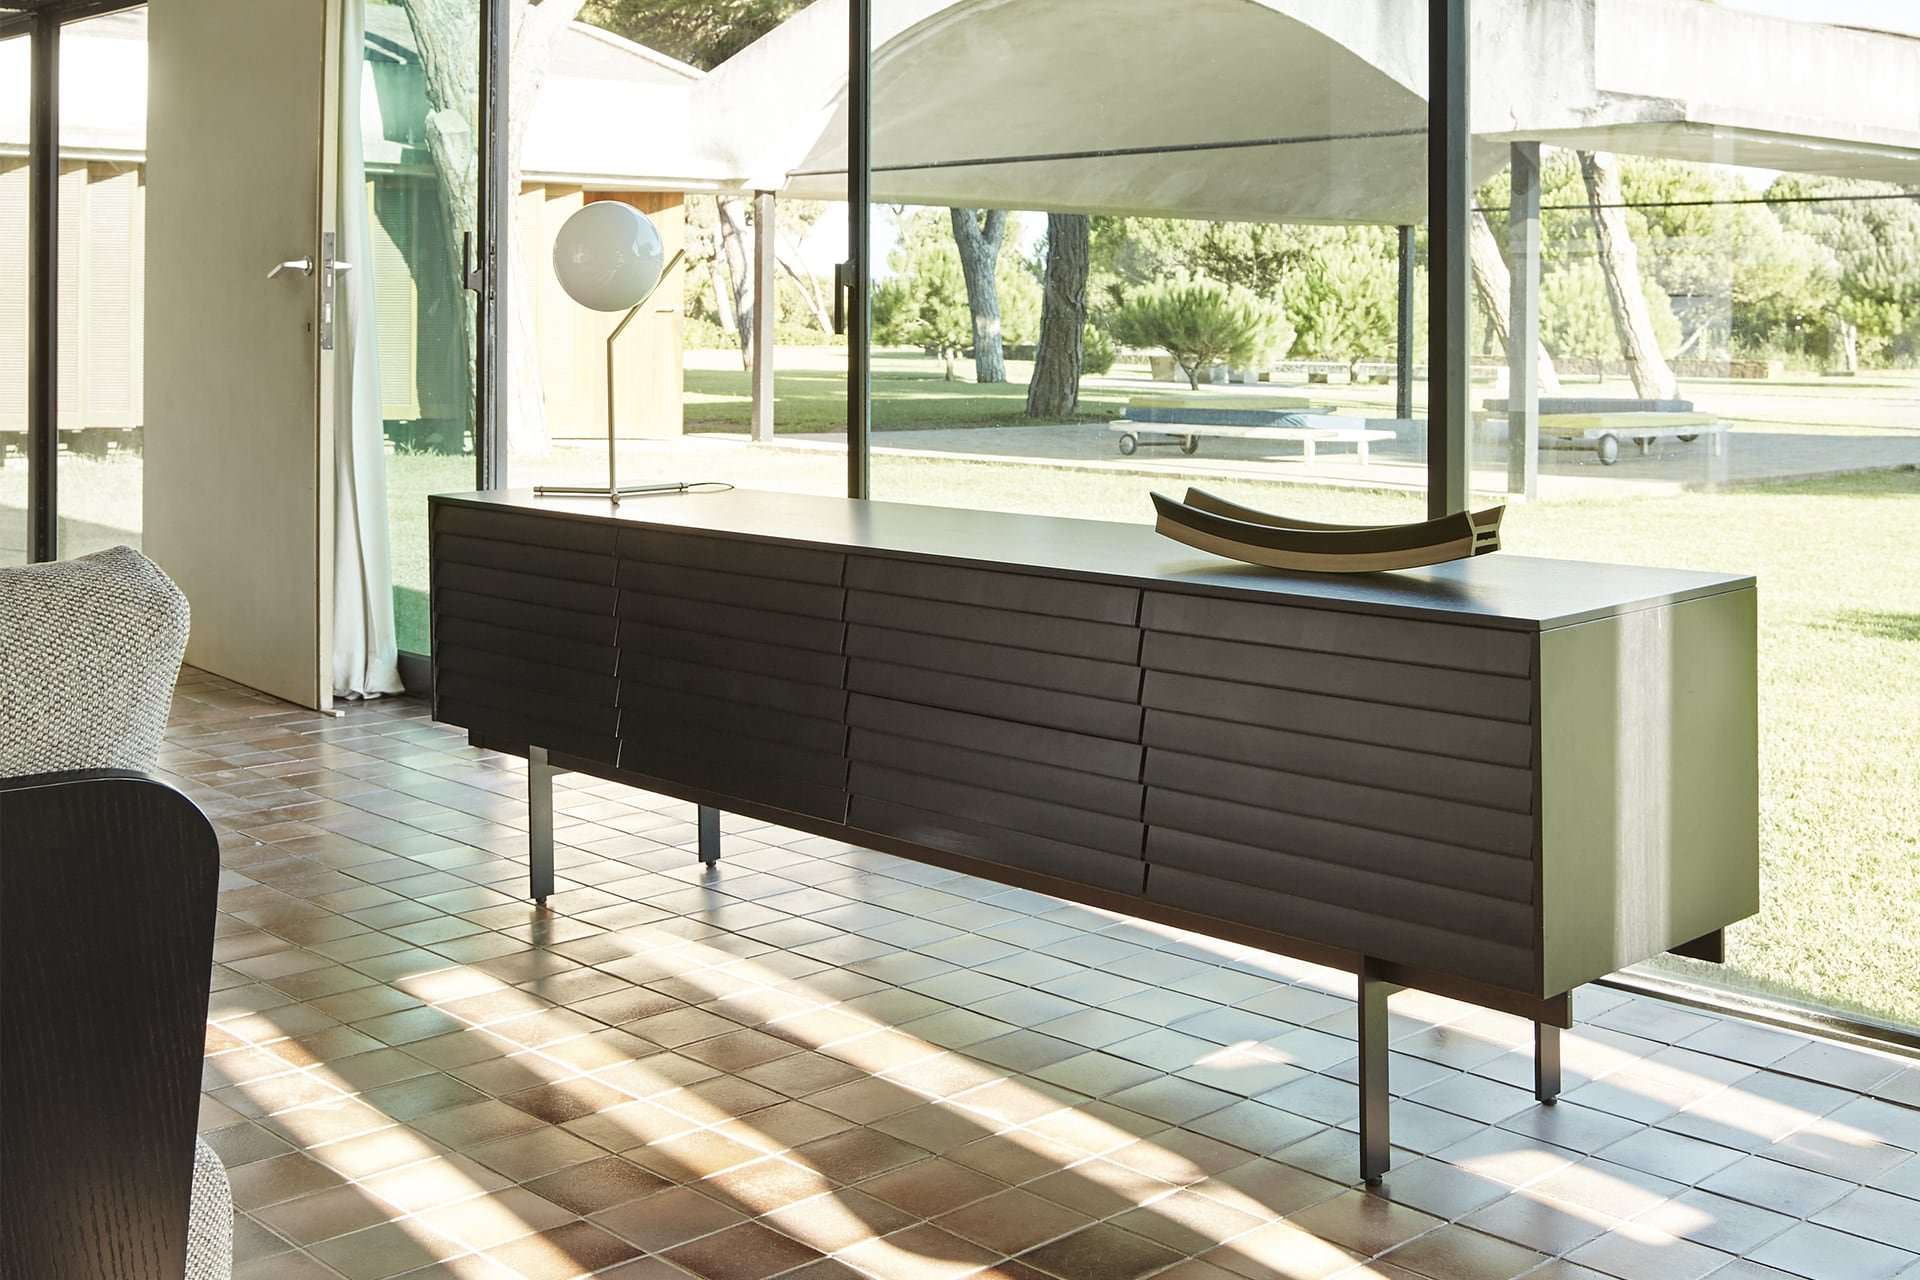 Sussex Sideboard cabinet from Punt Mobles, designed by Terence Woodgate